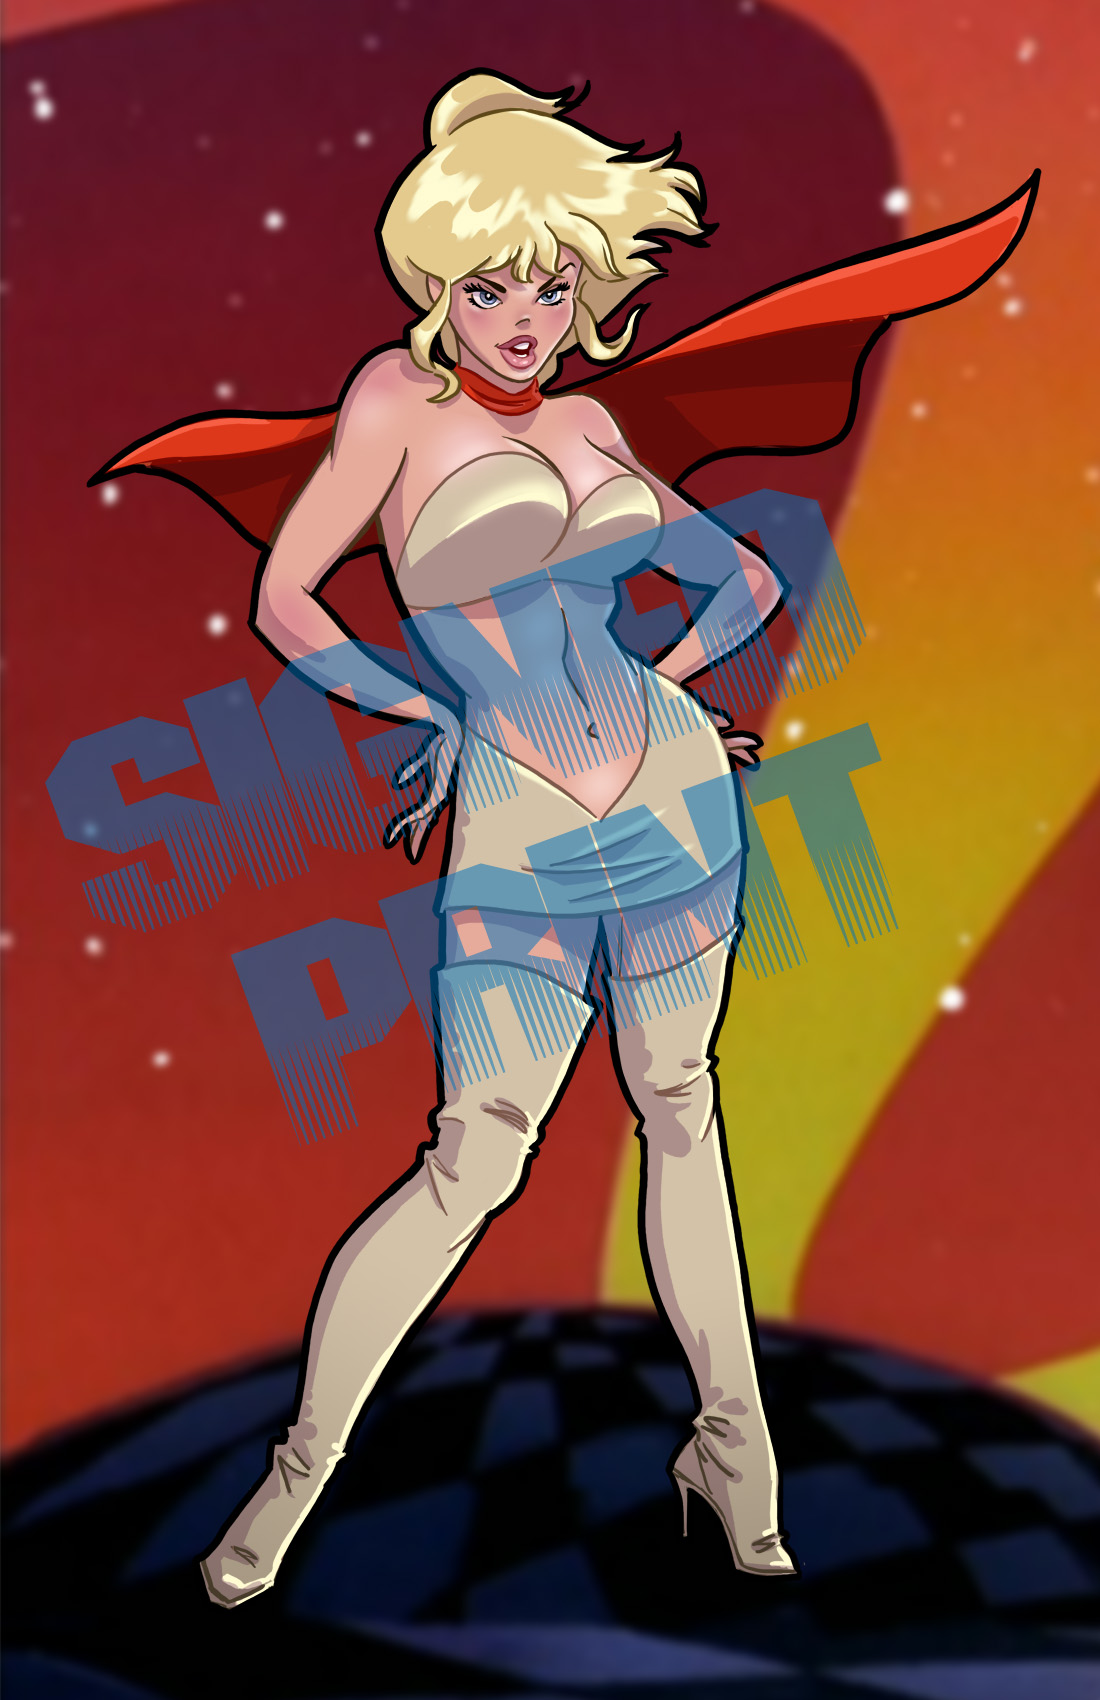 Super Holli Would From The Art Of Steven E Gordon